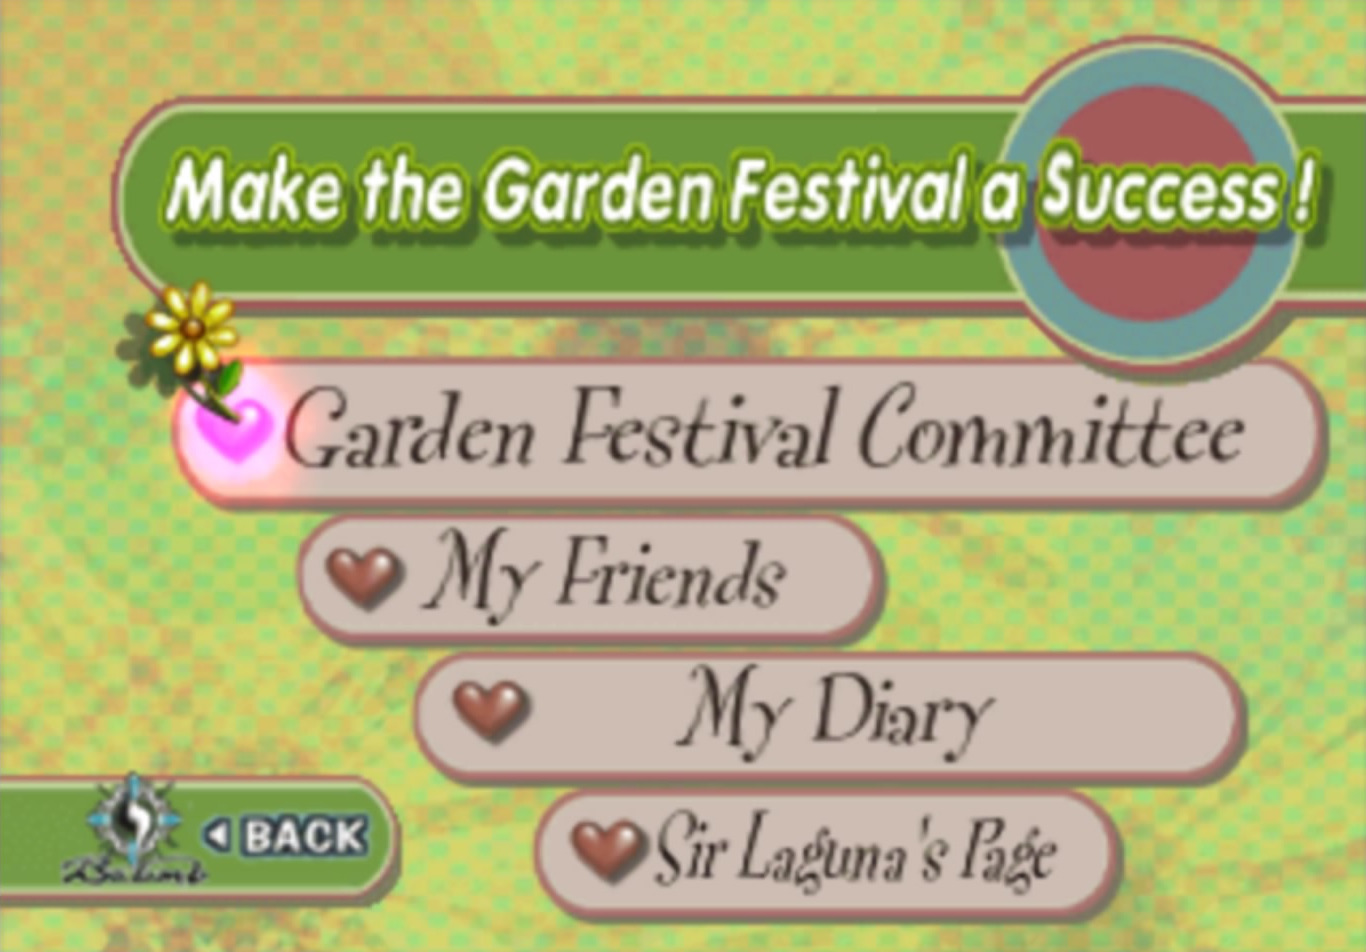 File:Festival Commitee Screen.jpg